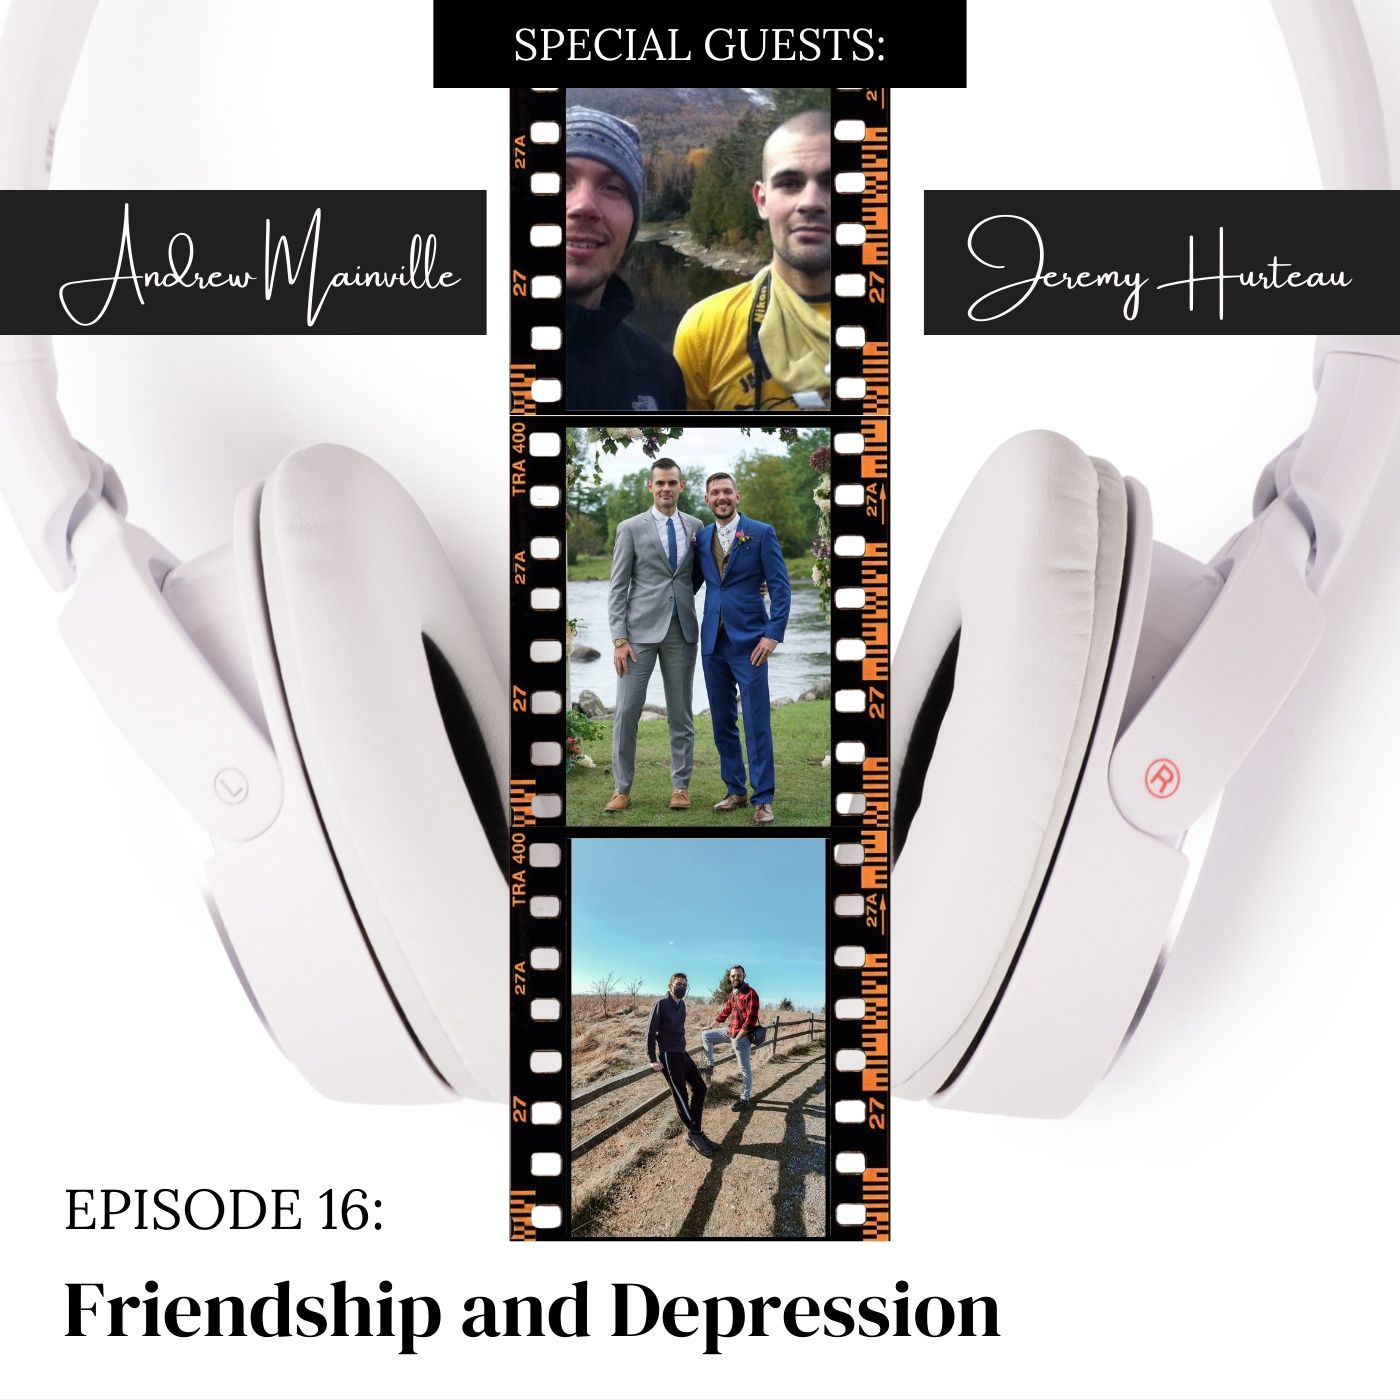 Friendship and Depression